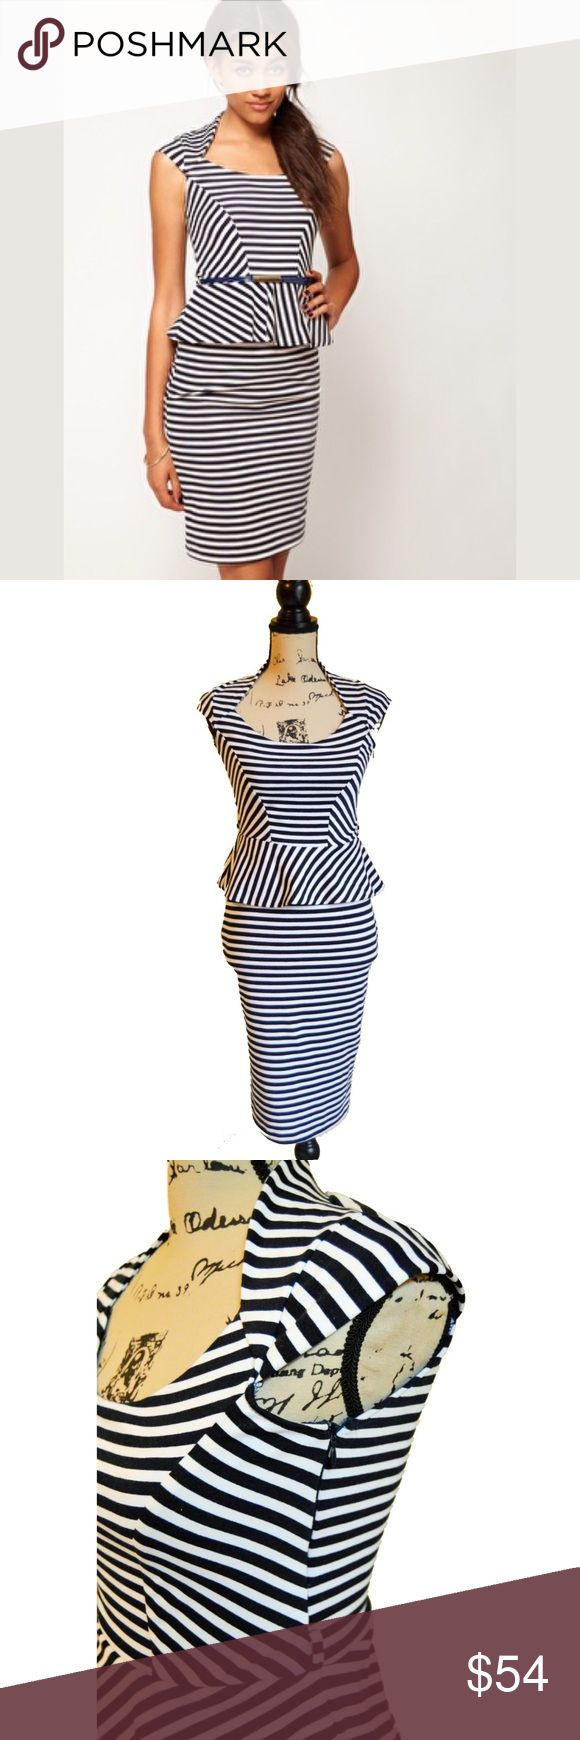 {River Island} ASOS Cap Sleeve Peplum Dress Gently used in great condition River Island Black and White Striped Sleeveless Peplum Dress. Has holes to wear with a belt. Does not include a belt.   Size 8   Materials: Body-94% Polyester, 6% Elastane Linning: 100% Polyester River Island Dresses